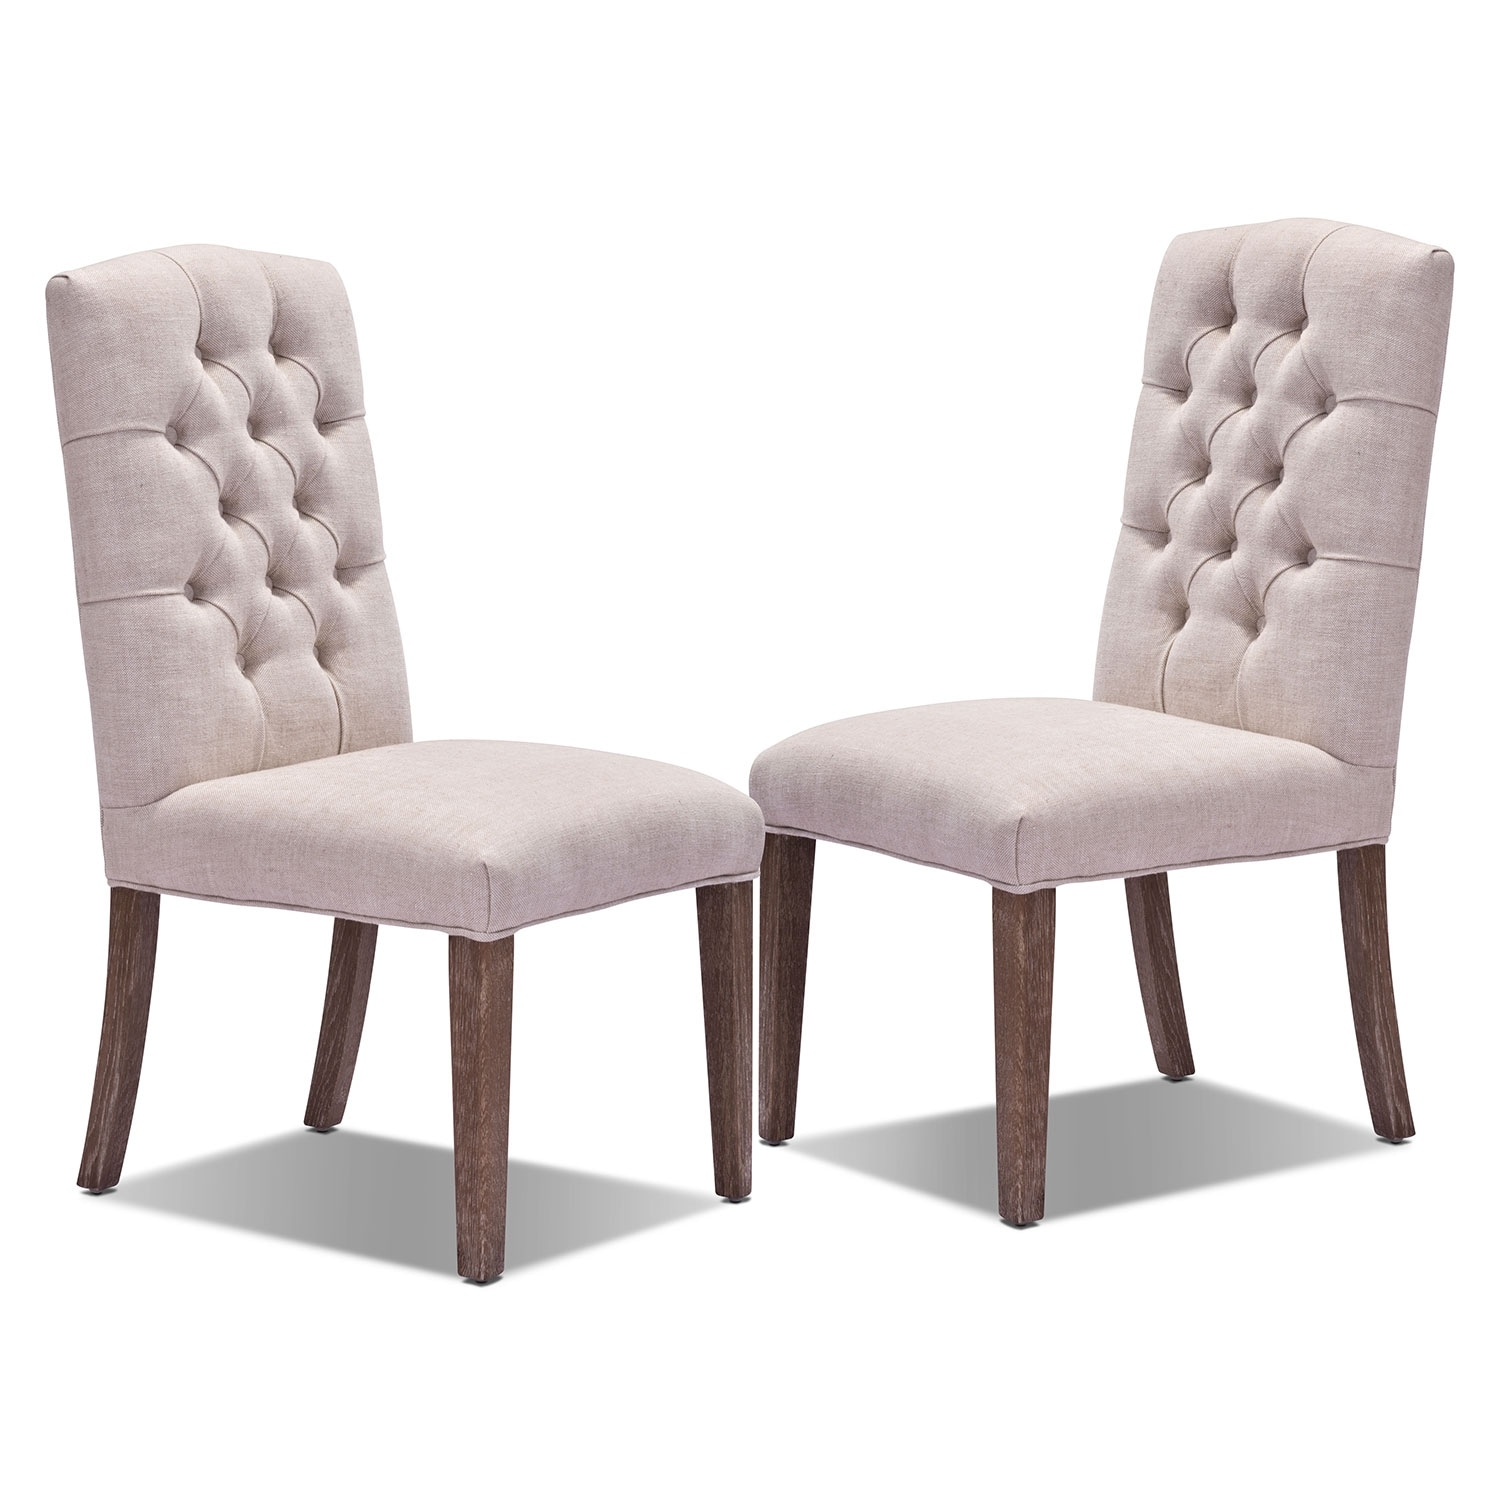 Dining Room Furniture - Dakota 2-Pack Chairs - Light Beige